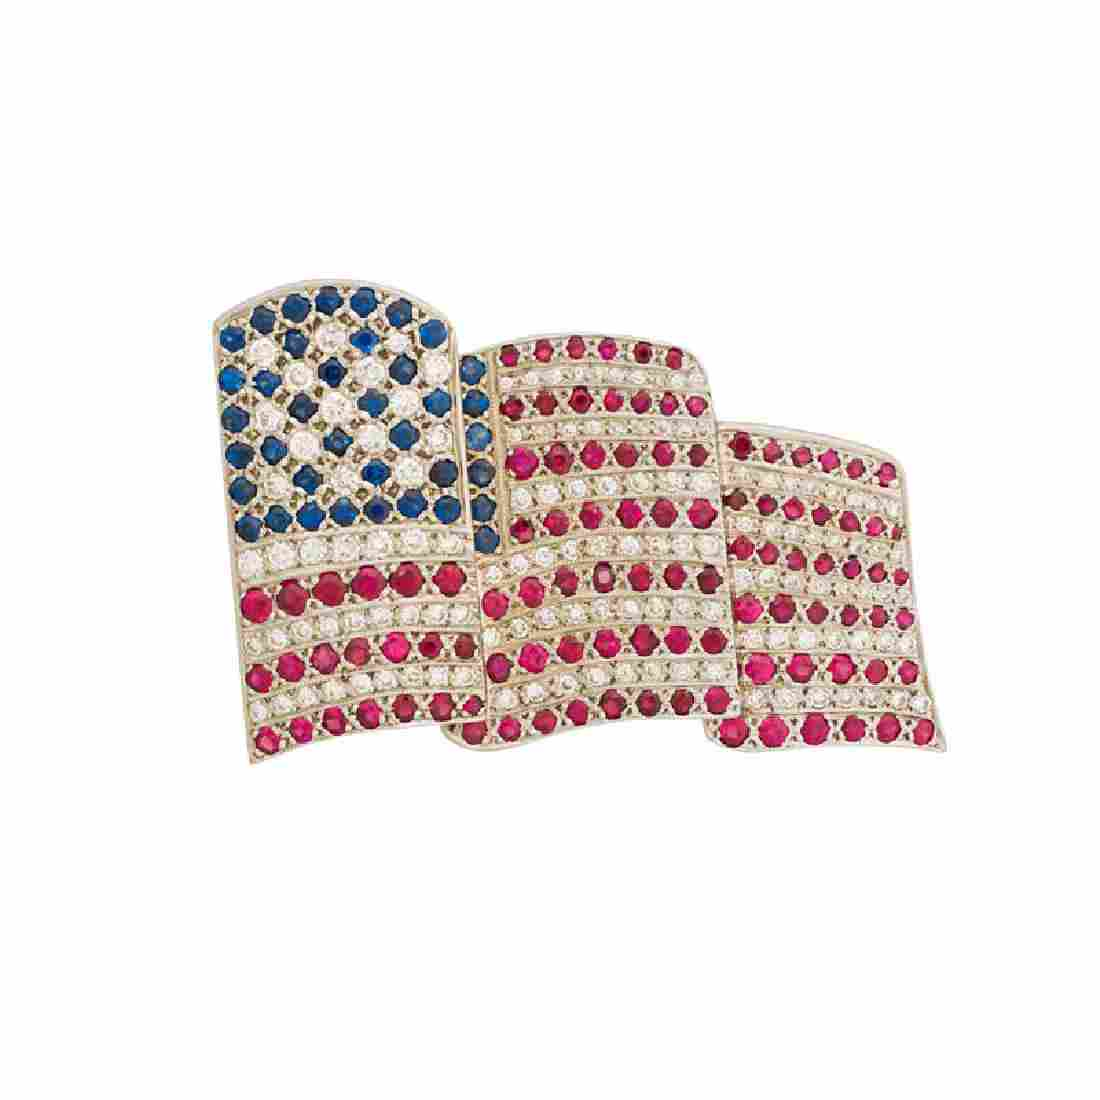 WHITE GOLD & DIAMOND AMERICAN FLAG BROOCH